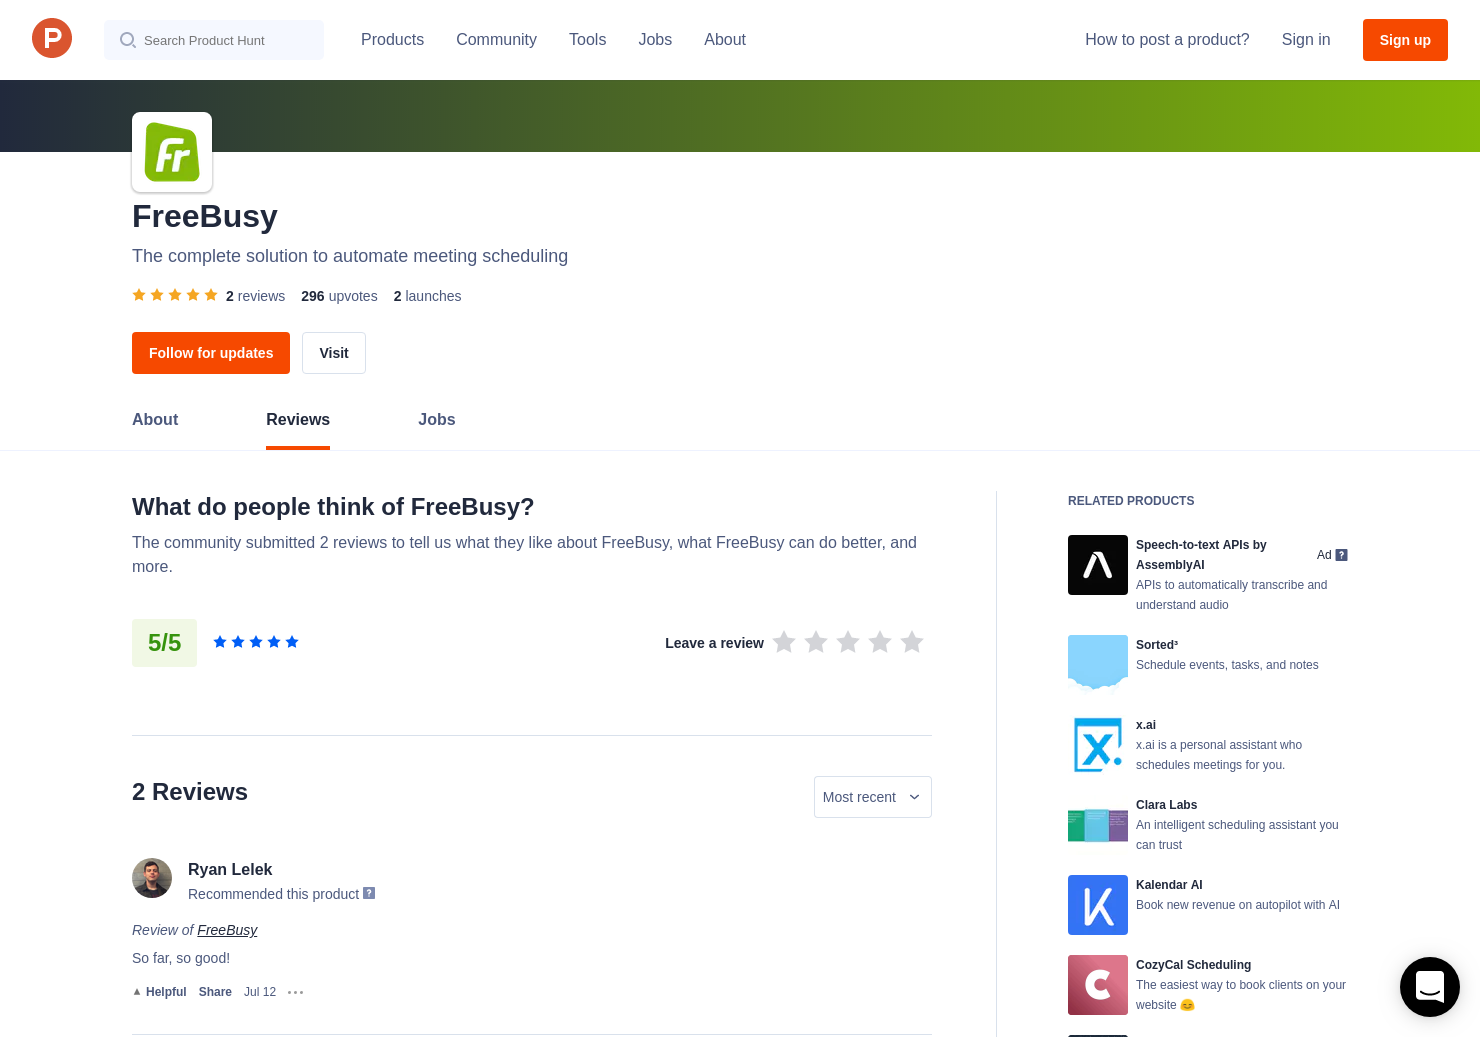 FreeBusy Scheduling Assistant Reviews - Pros, Cons and